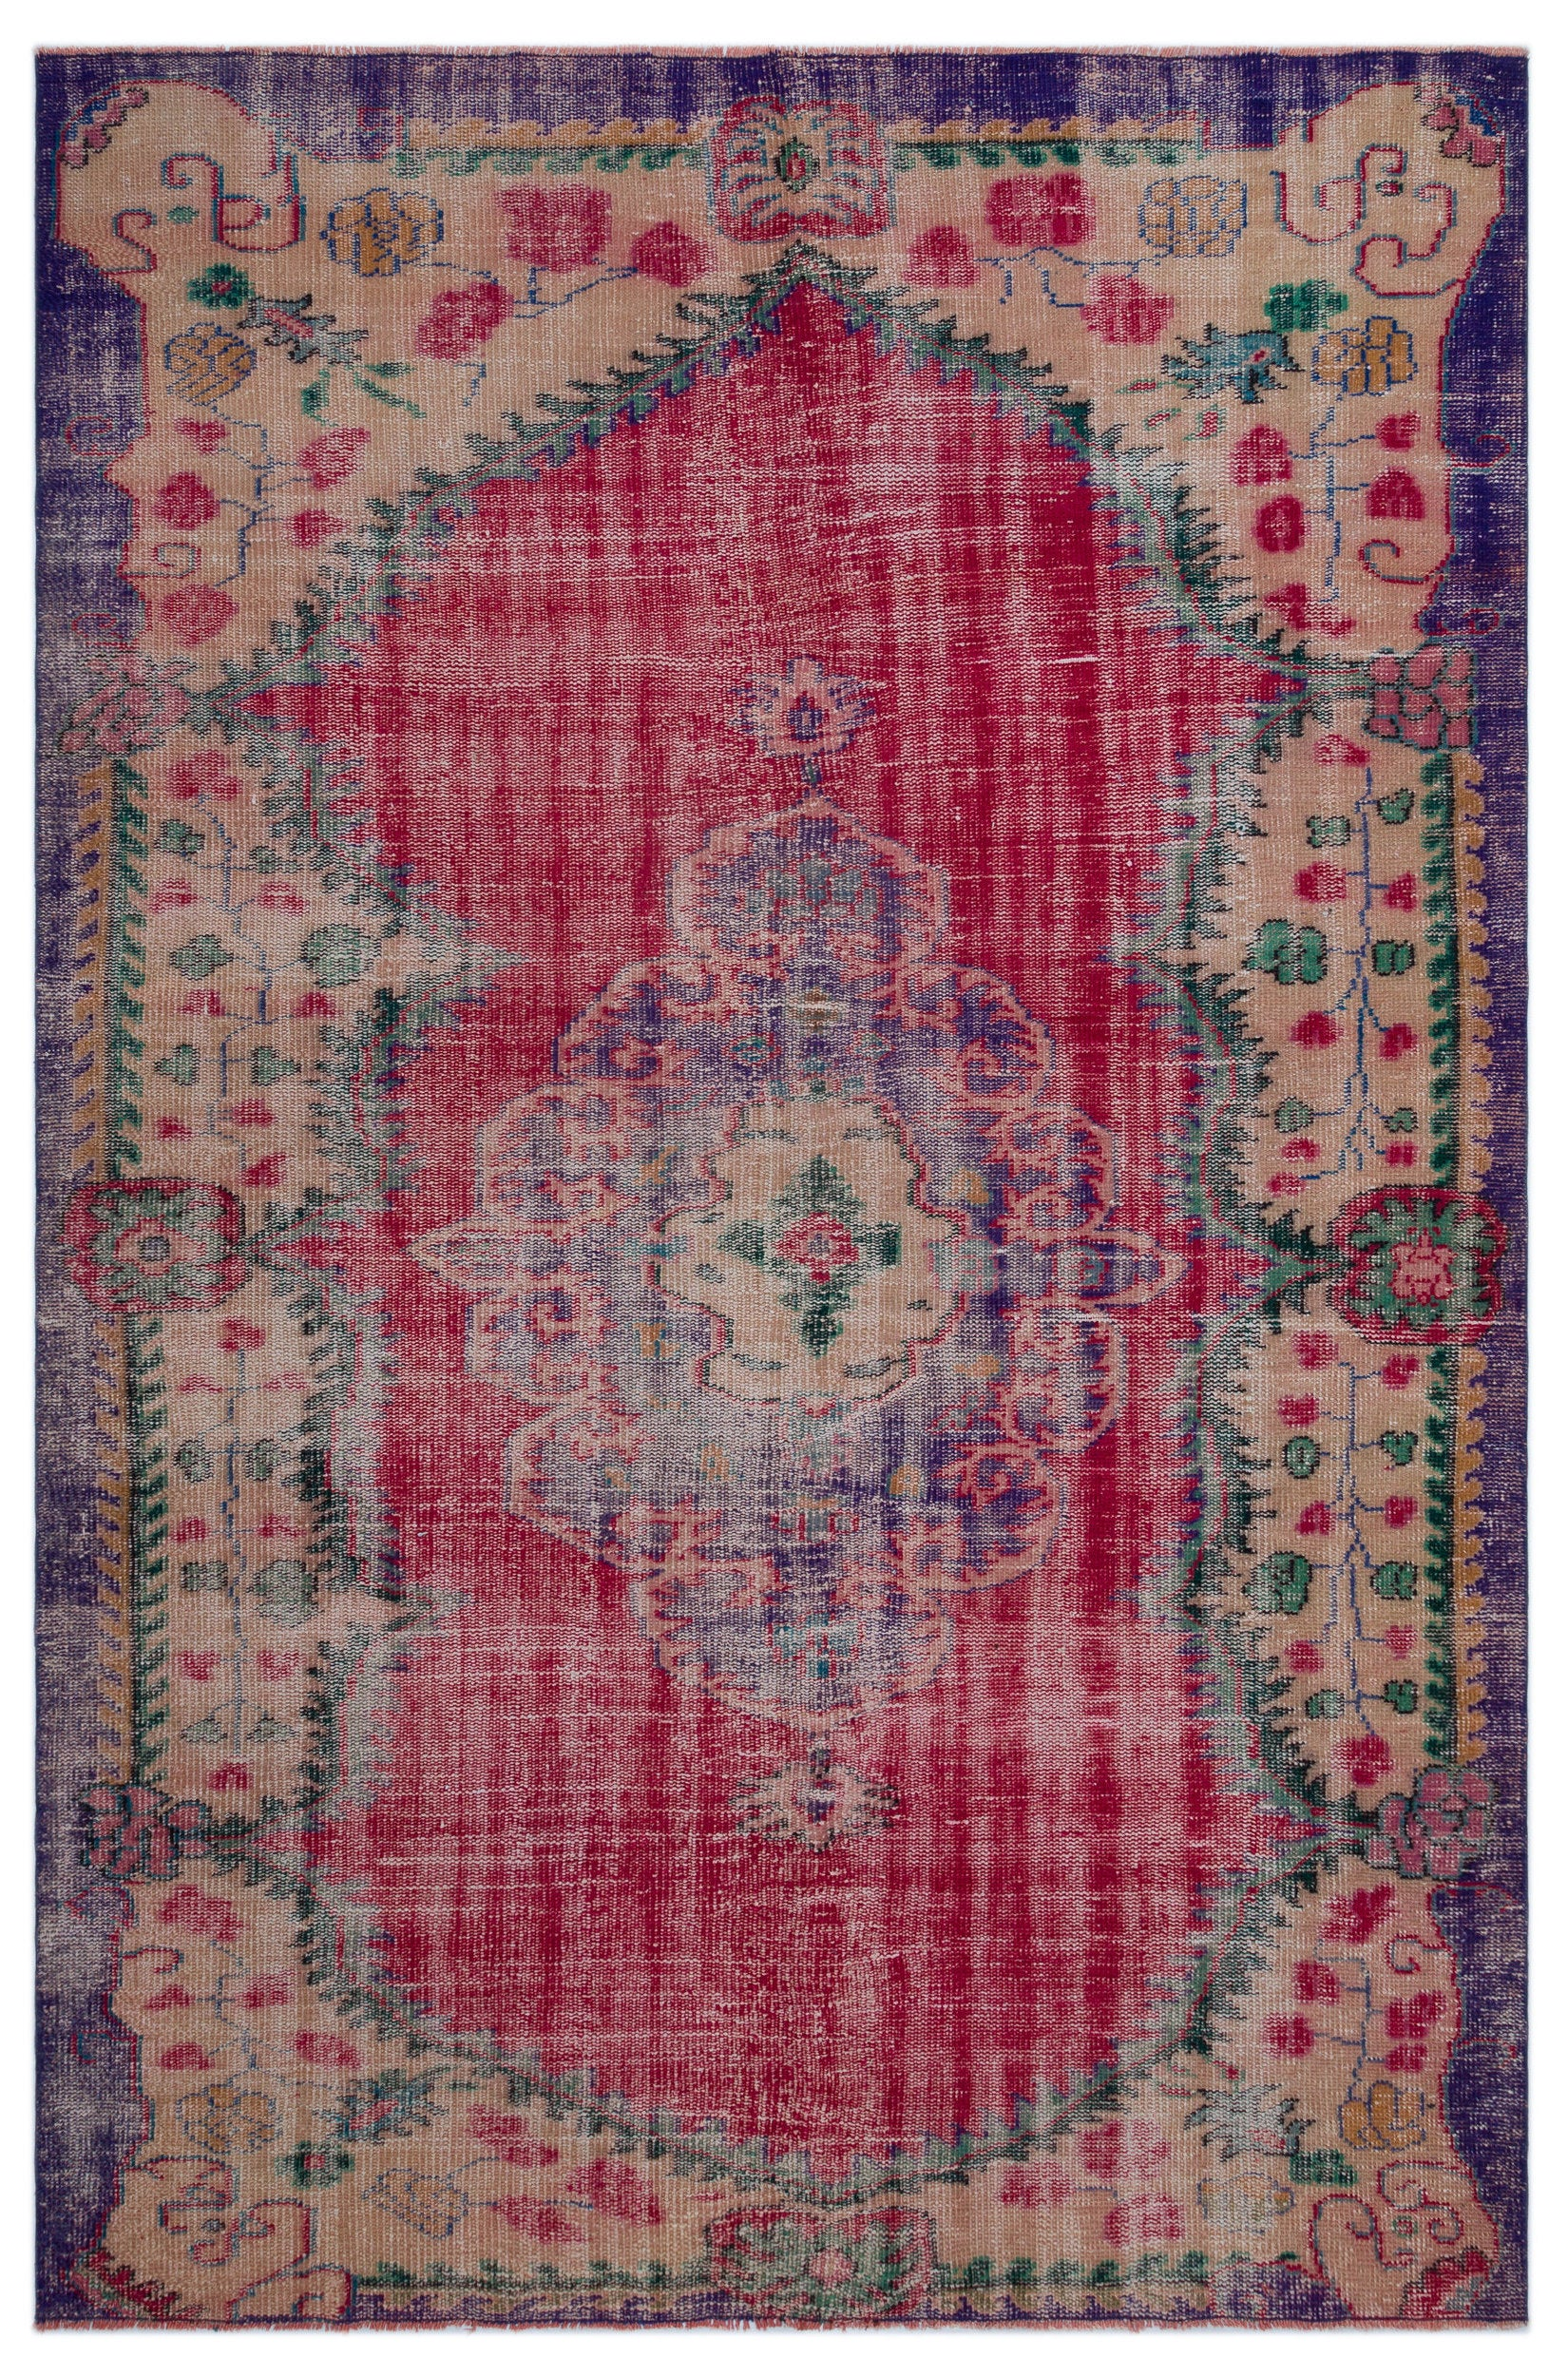 Retro Over Dyed Vintage Rug 6'3'' x 9'5'' ft 190 x 288 cm